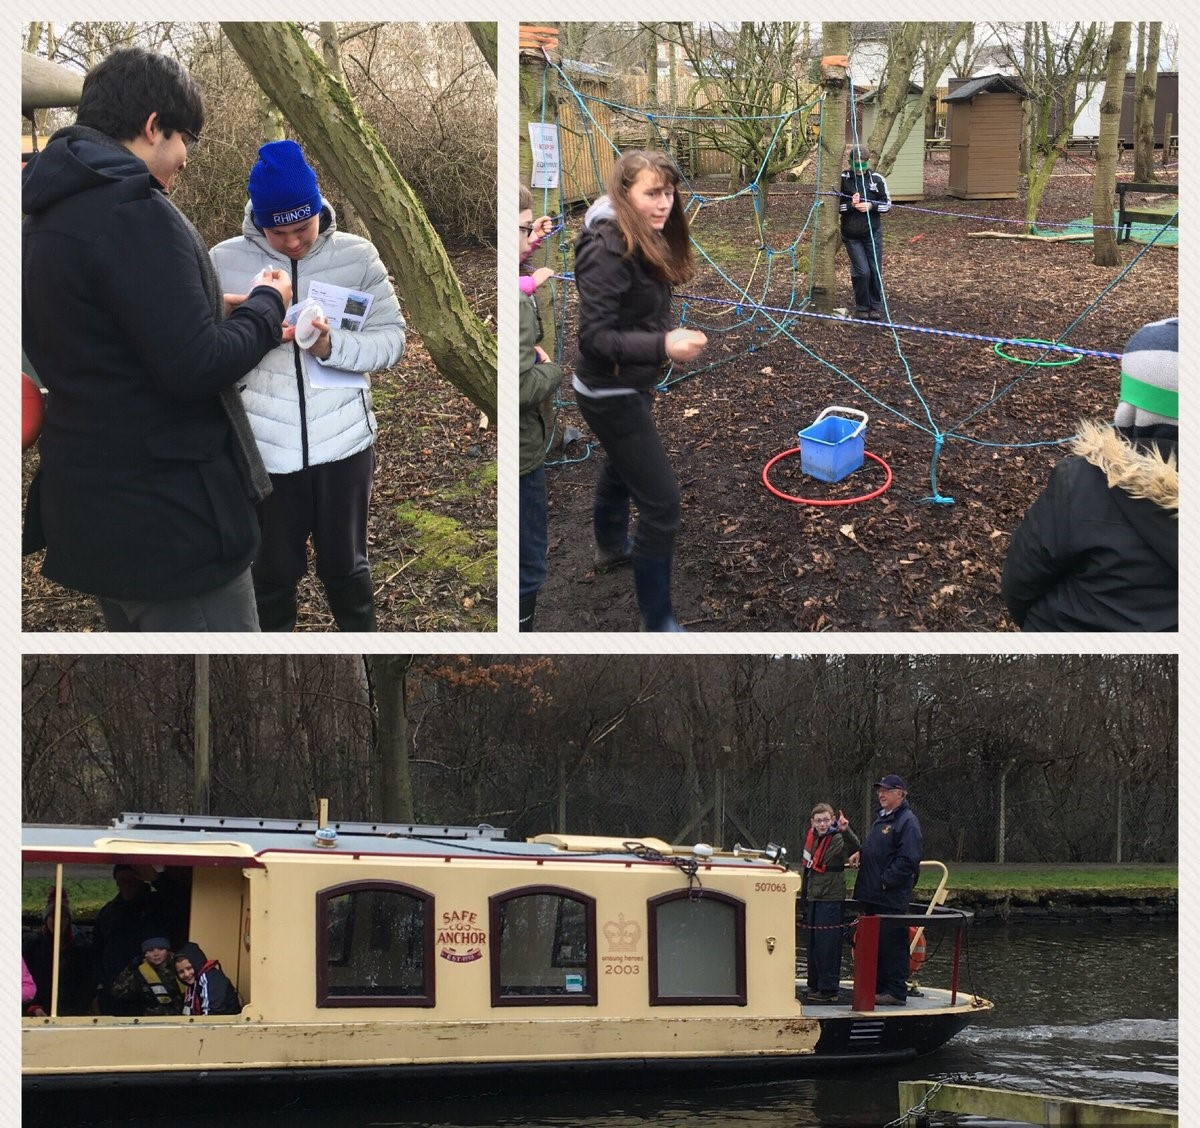 Image 7, 8. 9 Young People from West Leeds researching visitor experience at Little Deer Wood in Mirfield with Canal Connections, geocaching, team building and steering a canal boat.